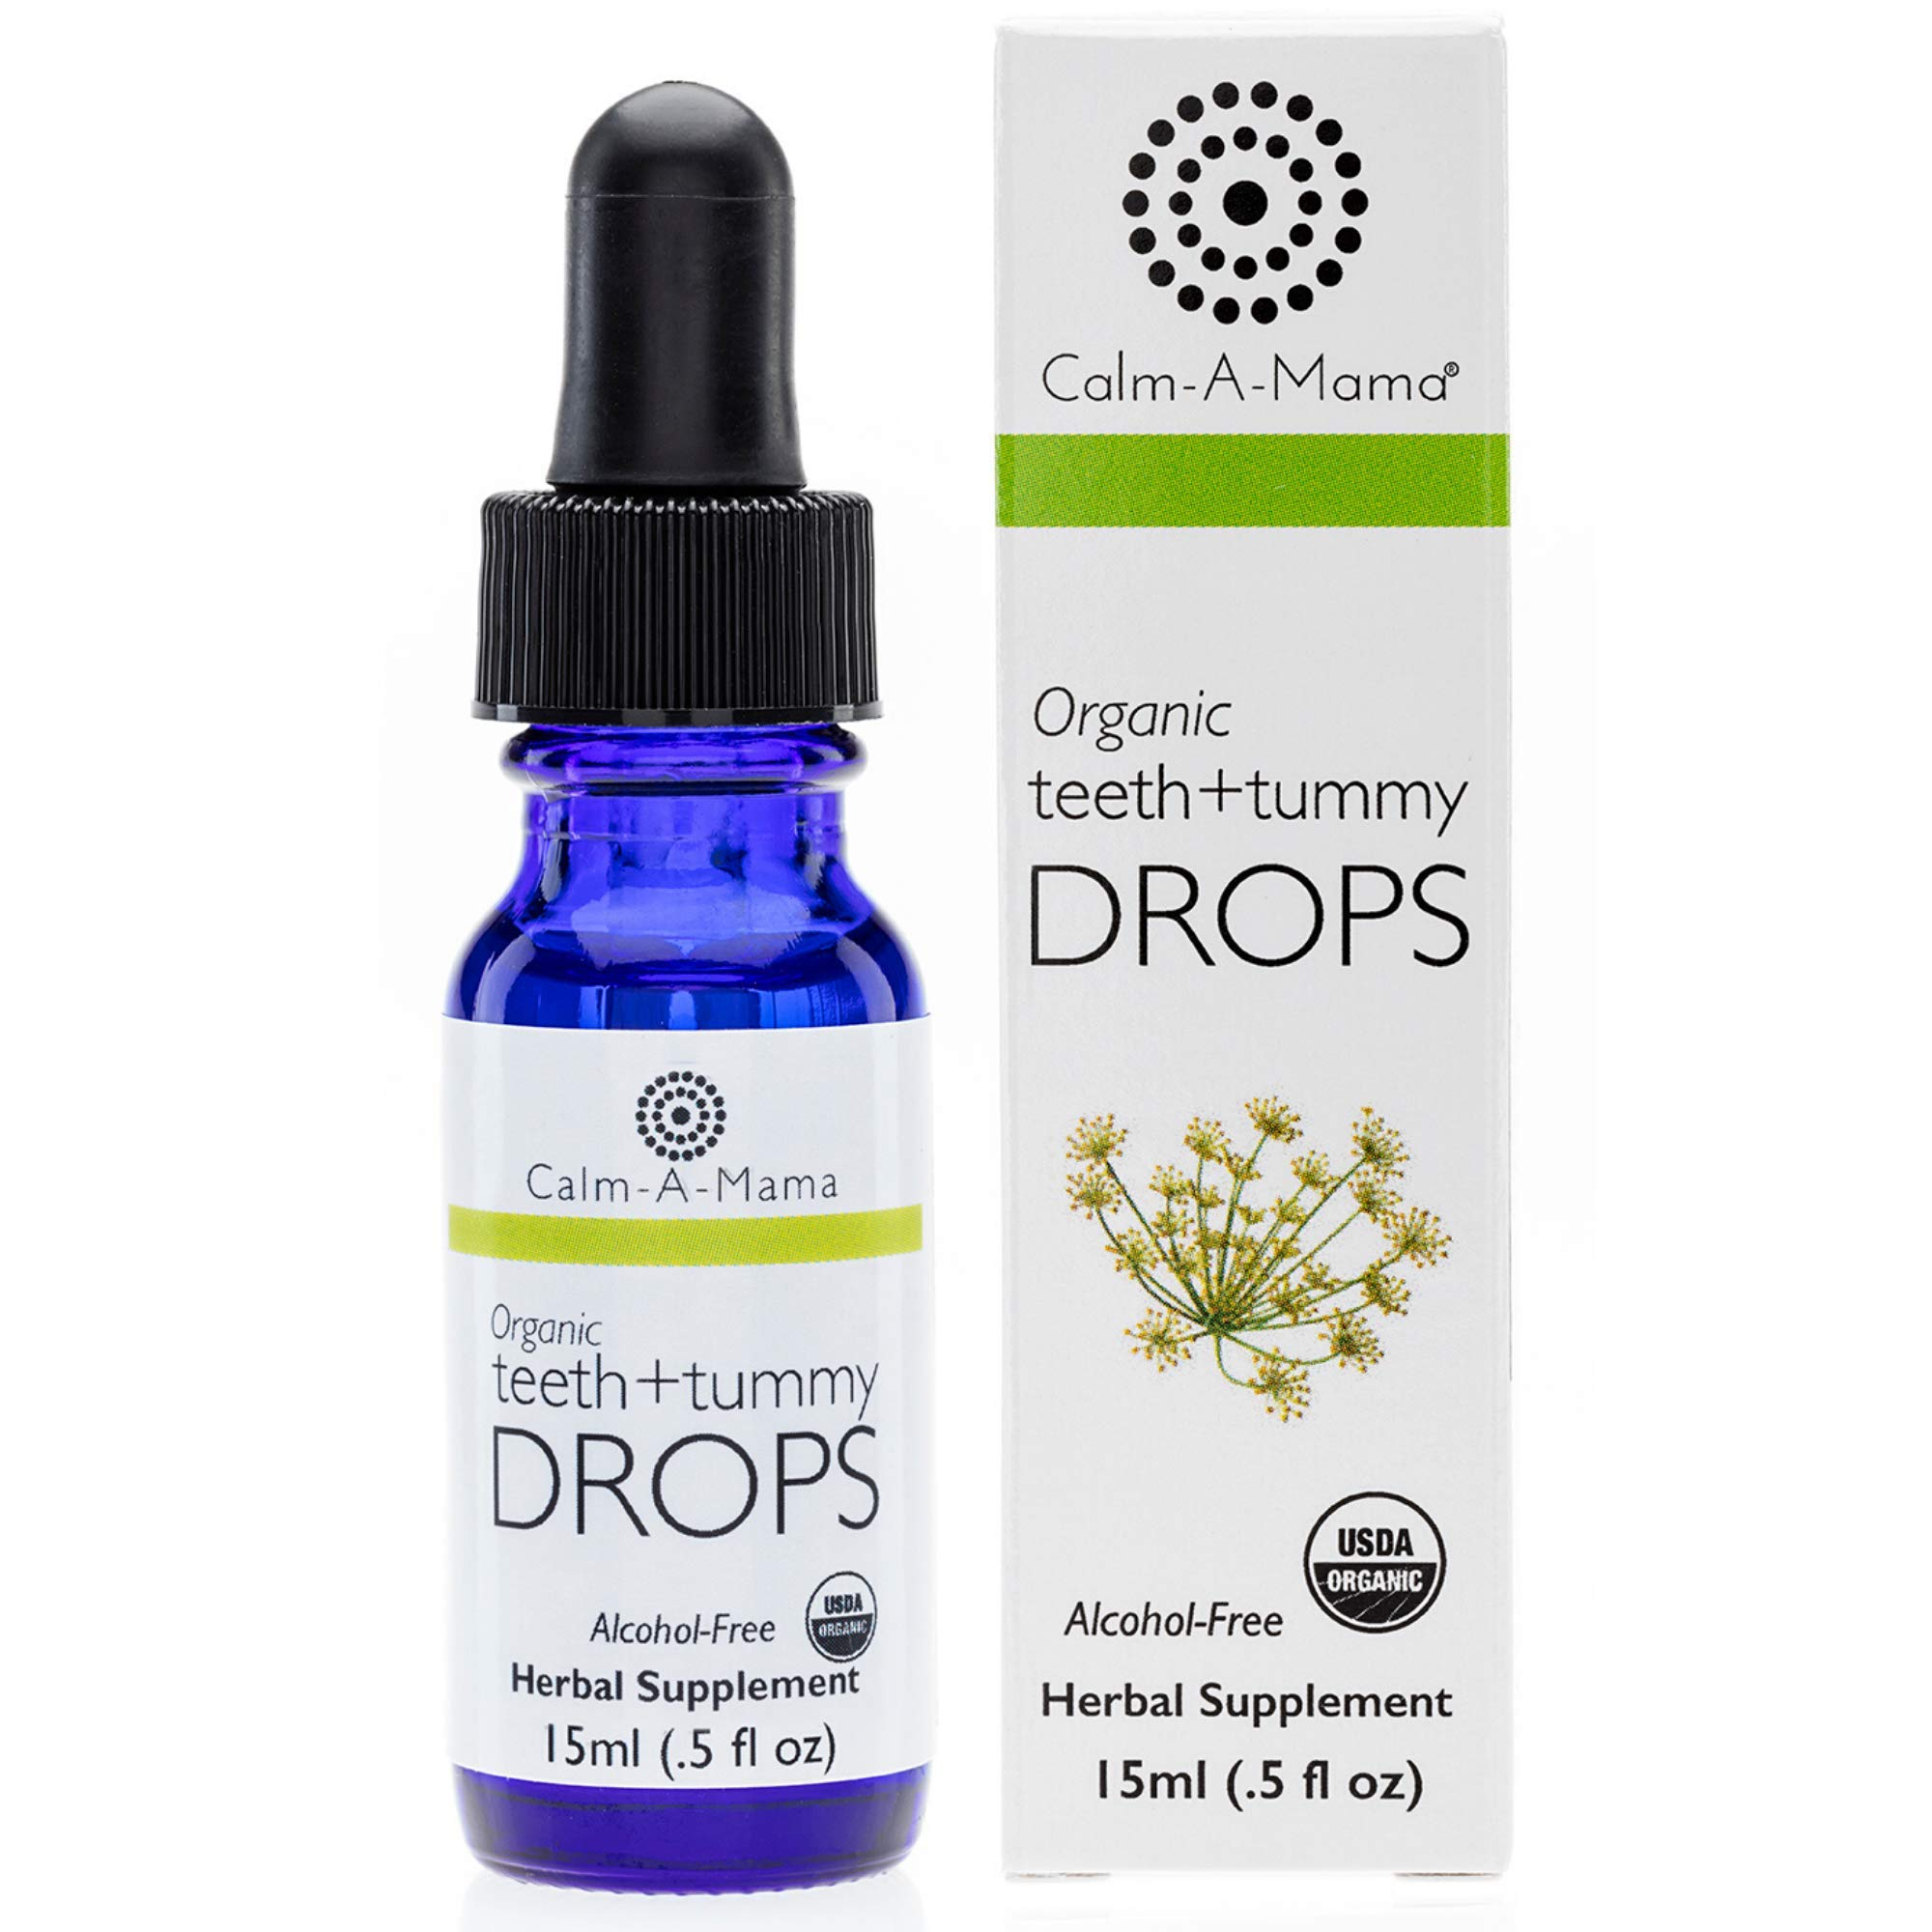 Calm-a-Mama Organic Teeth and Tummy Pain Relief Drops for Babies – 0.5oz / 15ml Natural Soothing Remedies for Newborns – Plant-Based Teeth Relief Drops Made in The USA with Organic Fennel Extract